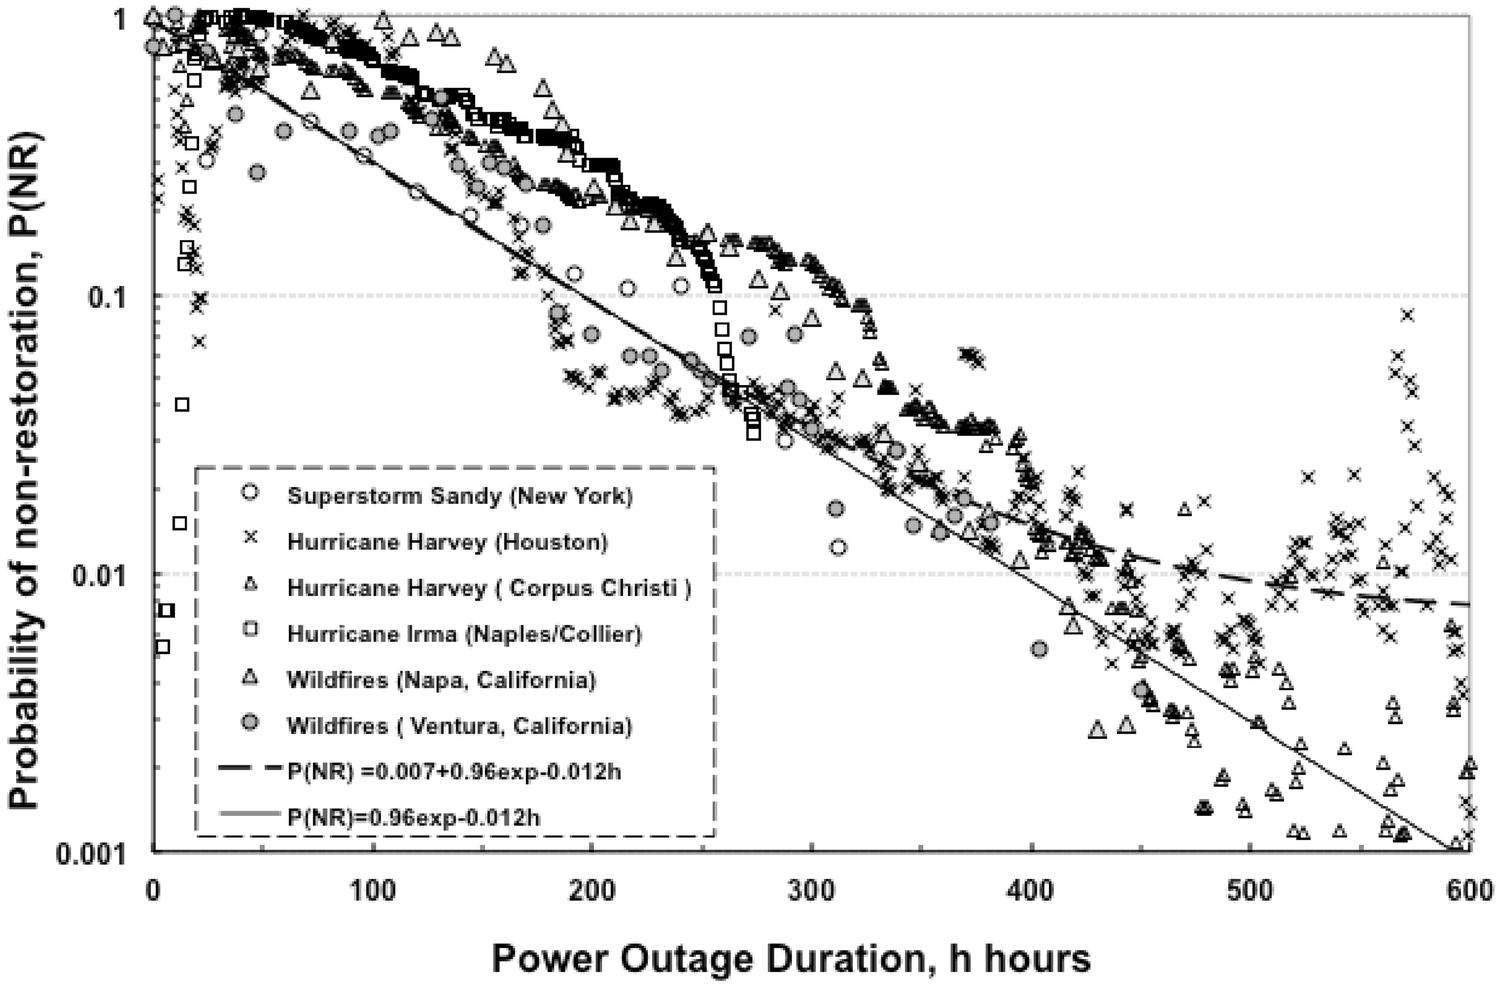 Power Restoration Prediction Following Extreme Events and Disasters